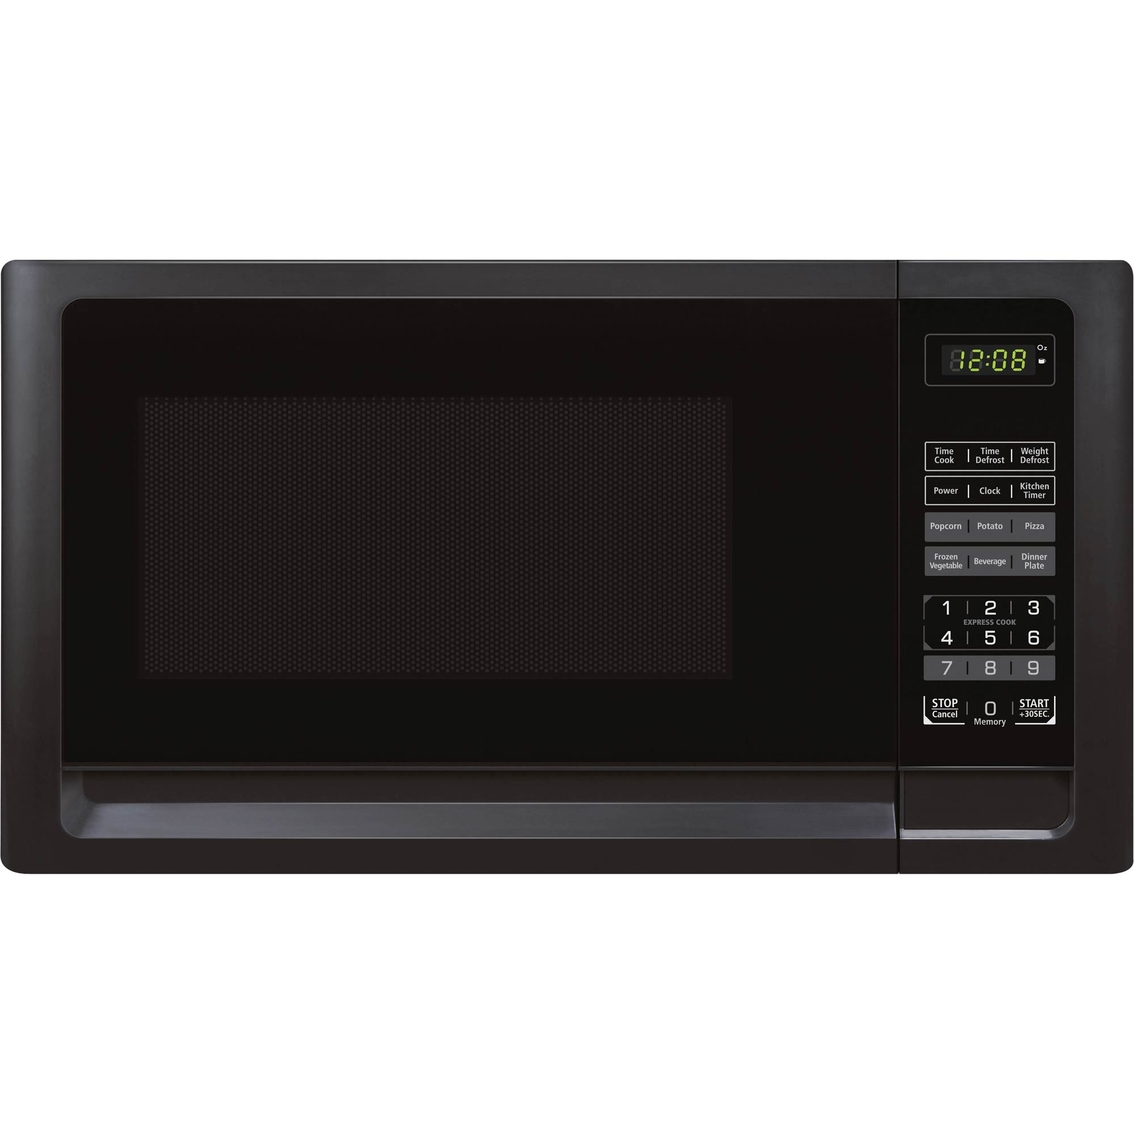 simply perfect 0 7 cu ft microwave oven black